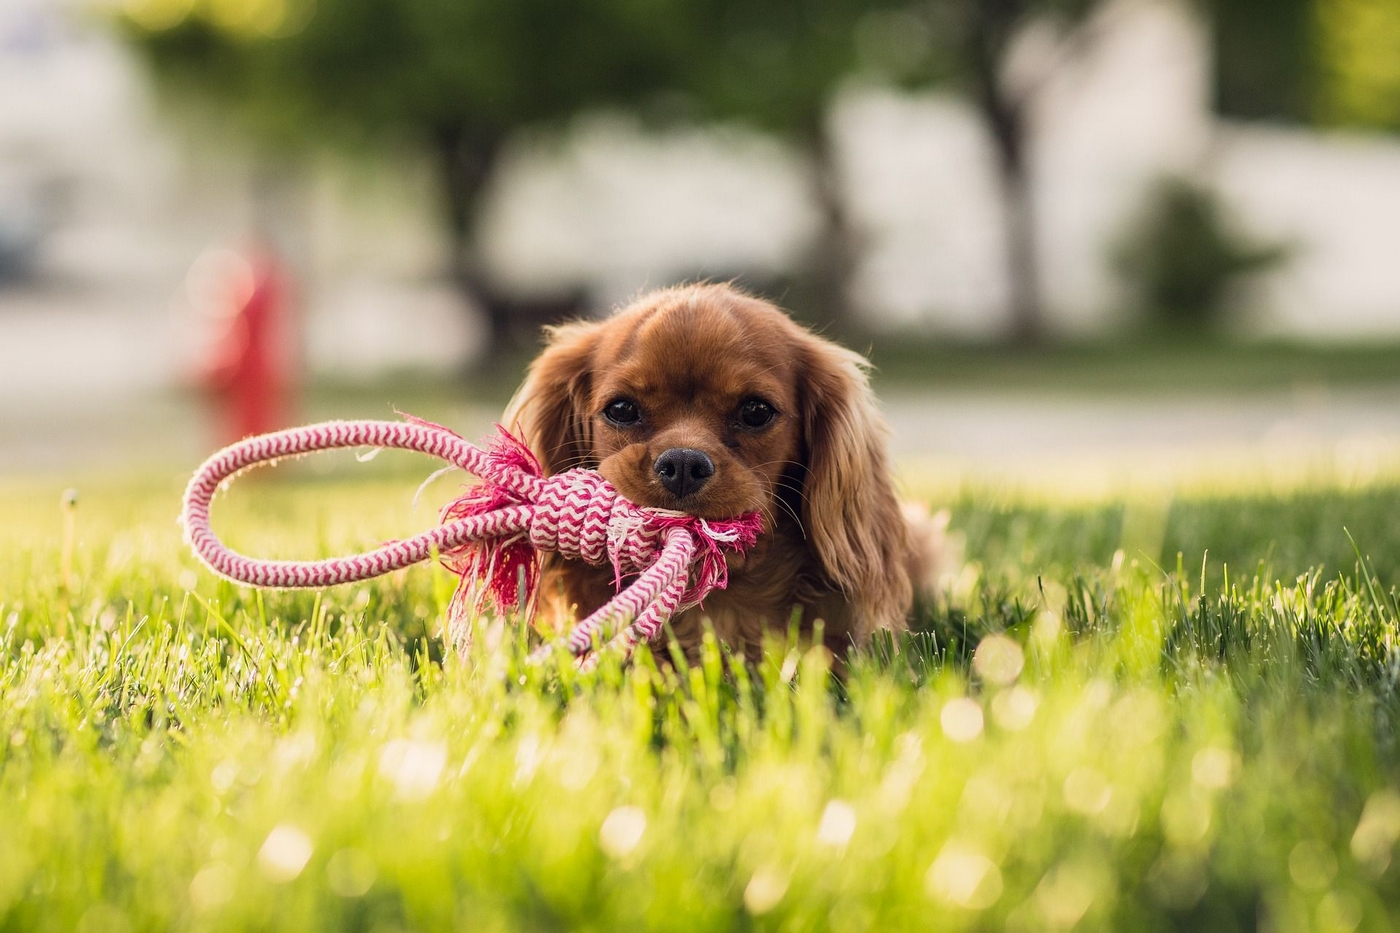 Outdoor image of a small image chewing on a dog toy